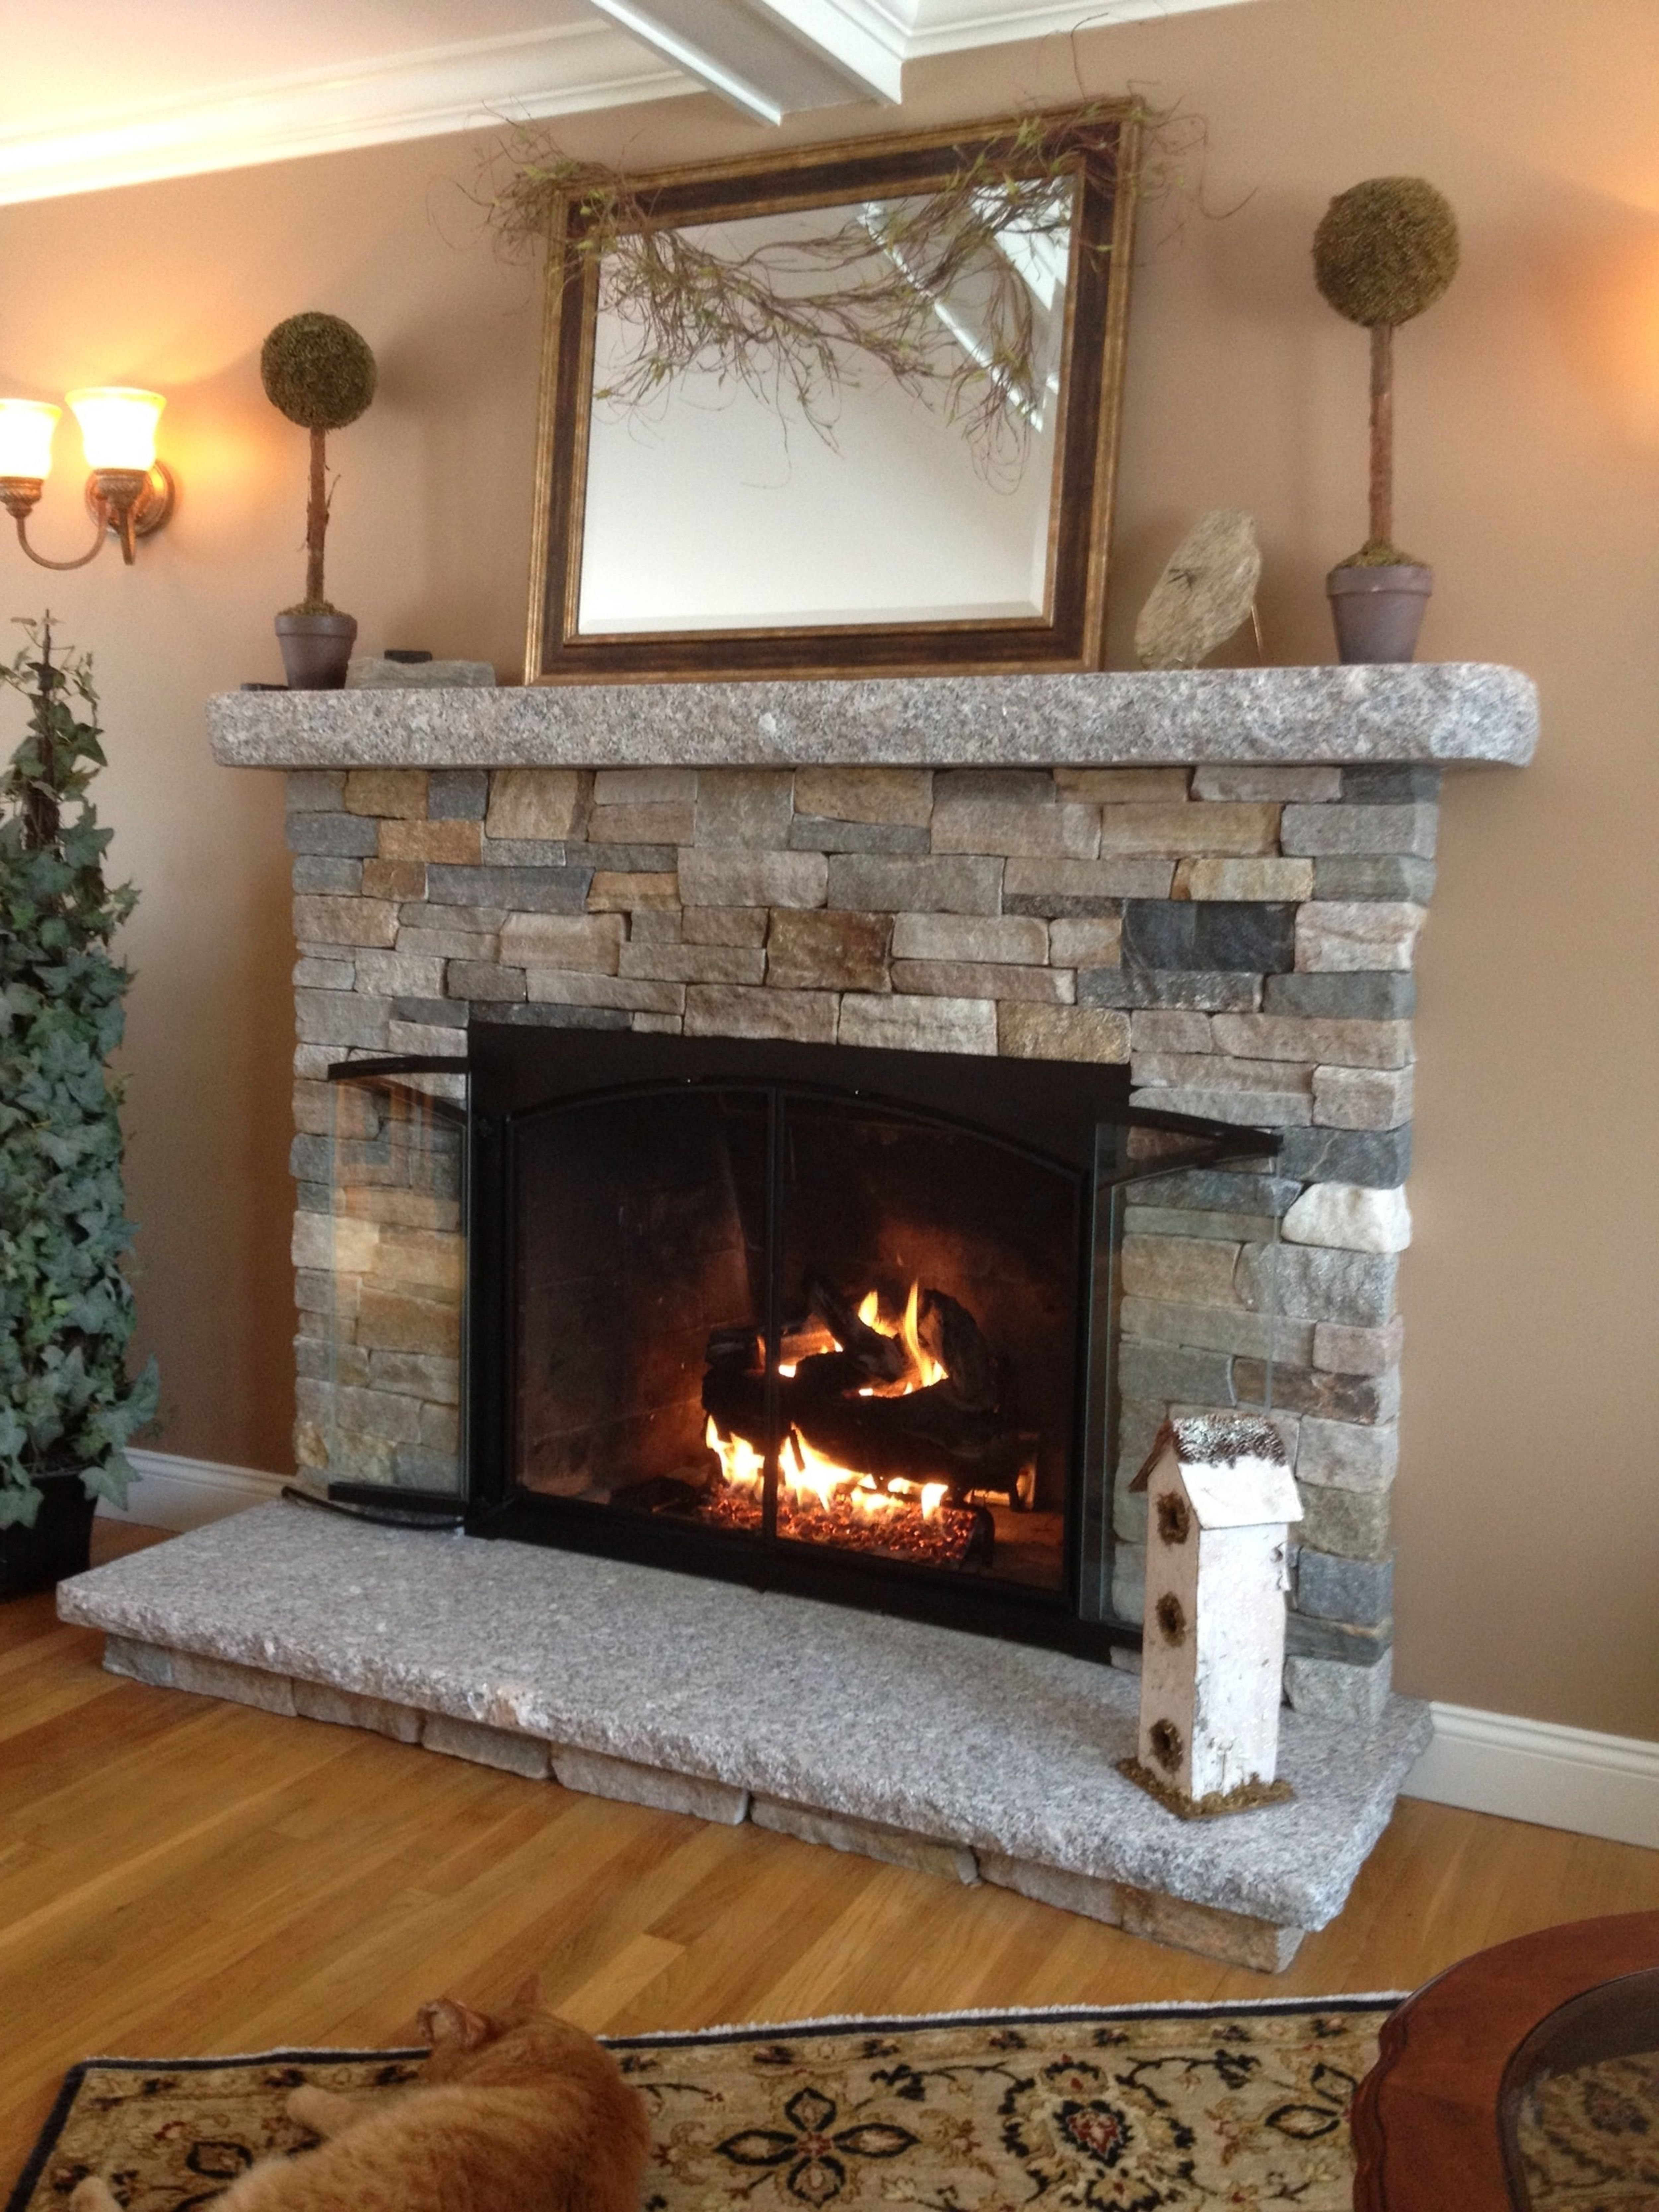 chic topiary trees with rectangle mirror and stone fireplace ideas plus christmas tree also wall sconce for beautiful modern living room design installing stone veneer fireplace mantelpiece accessorie